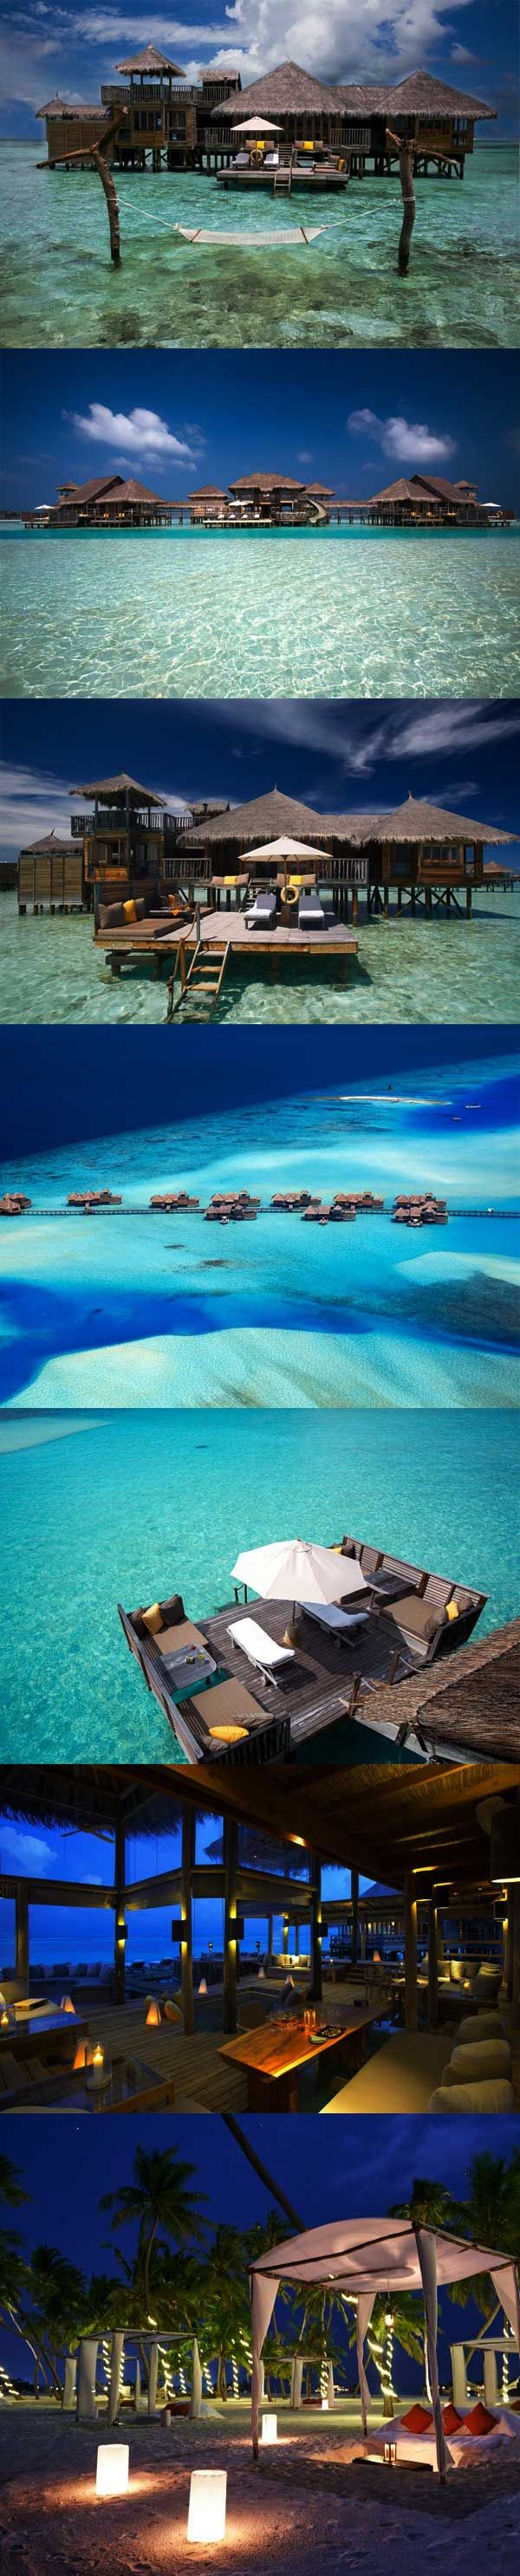 Best hotel in the world 2015. Gili Lankanfushi in Maldives is set on the private tropical island of Lankanfushi in the Malé Atoll. The resort consists of 45 over water villas, meaning every guest gets a piece of paradise all to themselves. Planing a trip to Maldives? Do it with the world's smartest trip planner triphobo.com